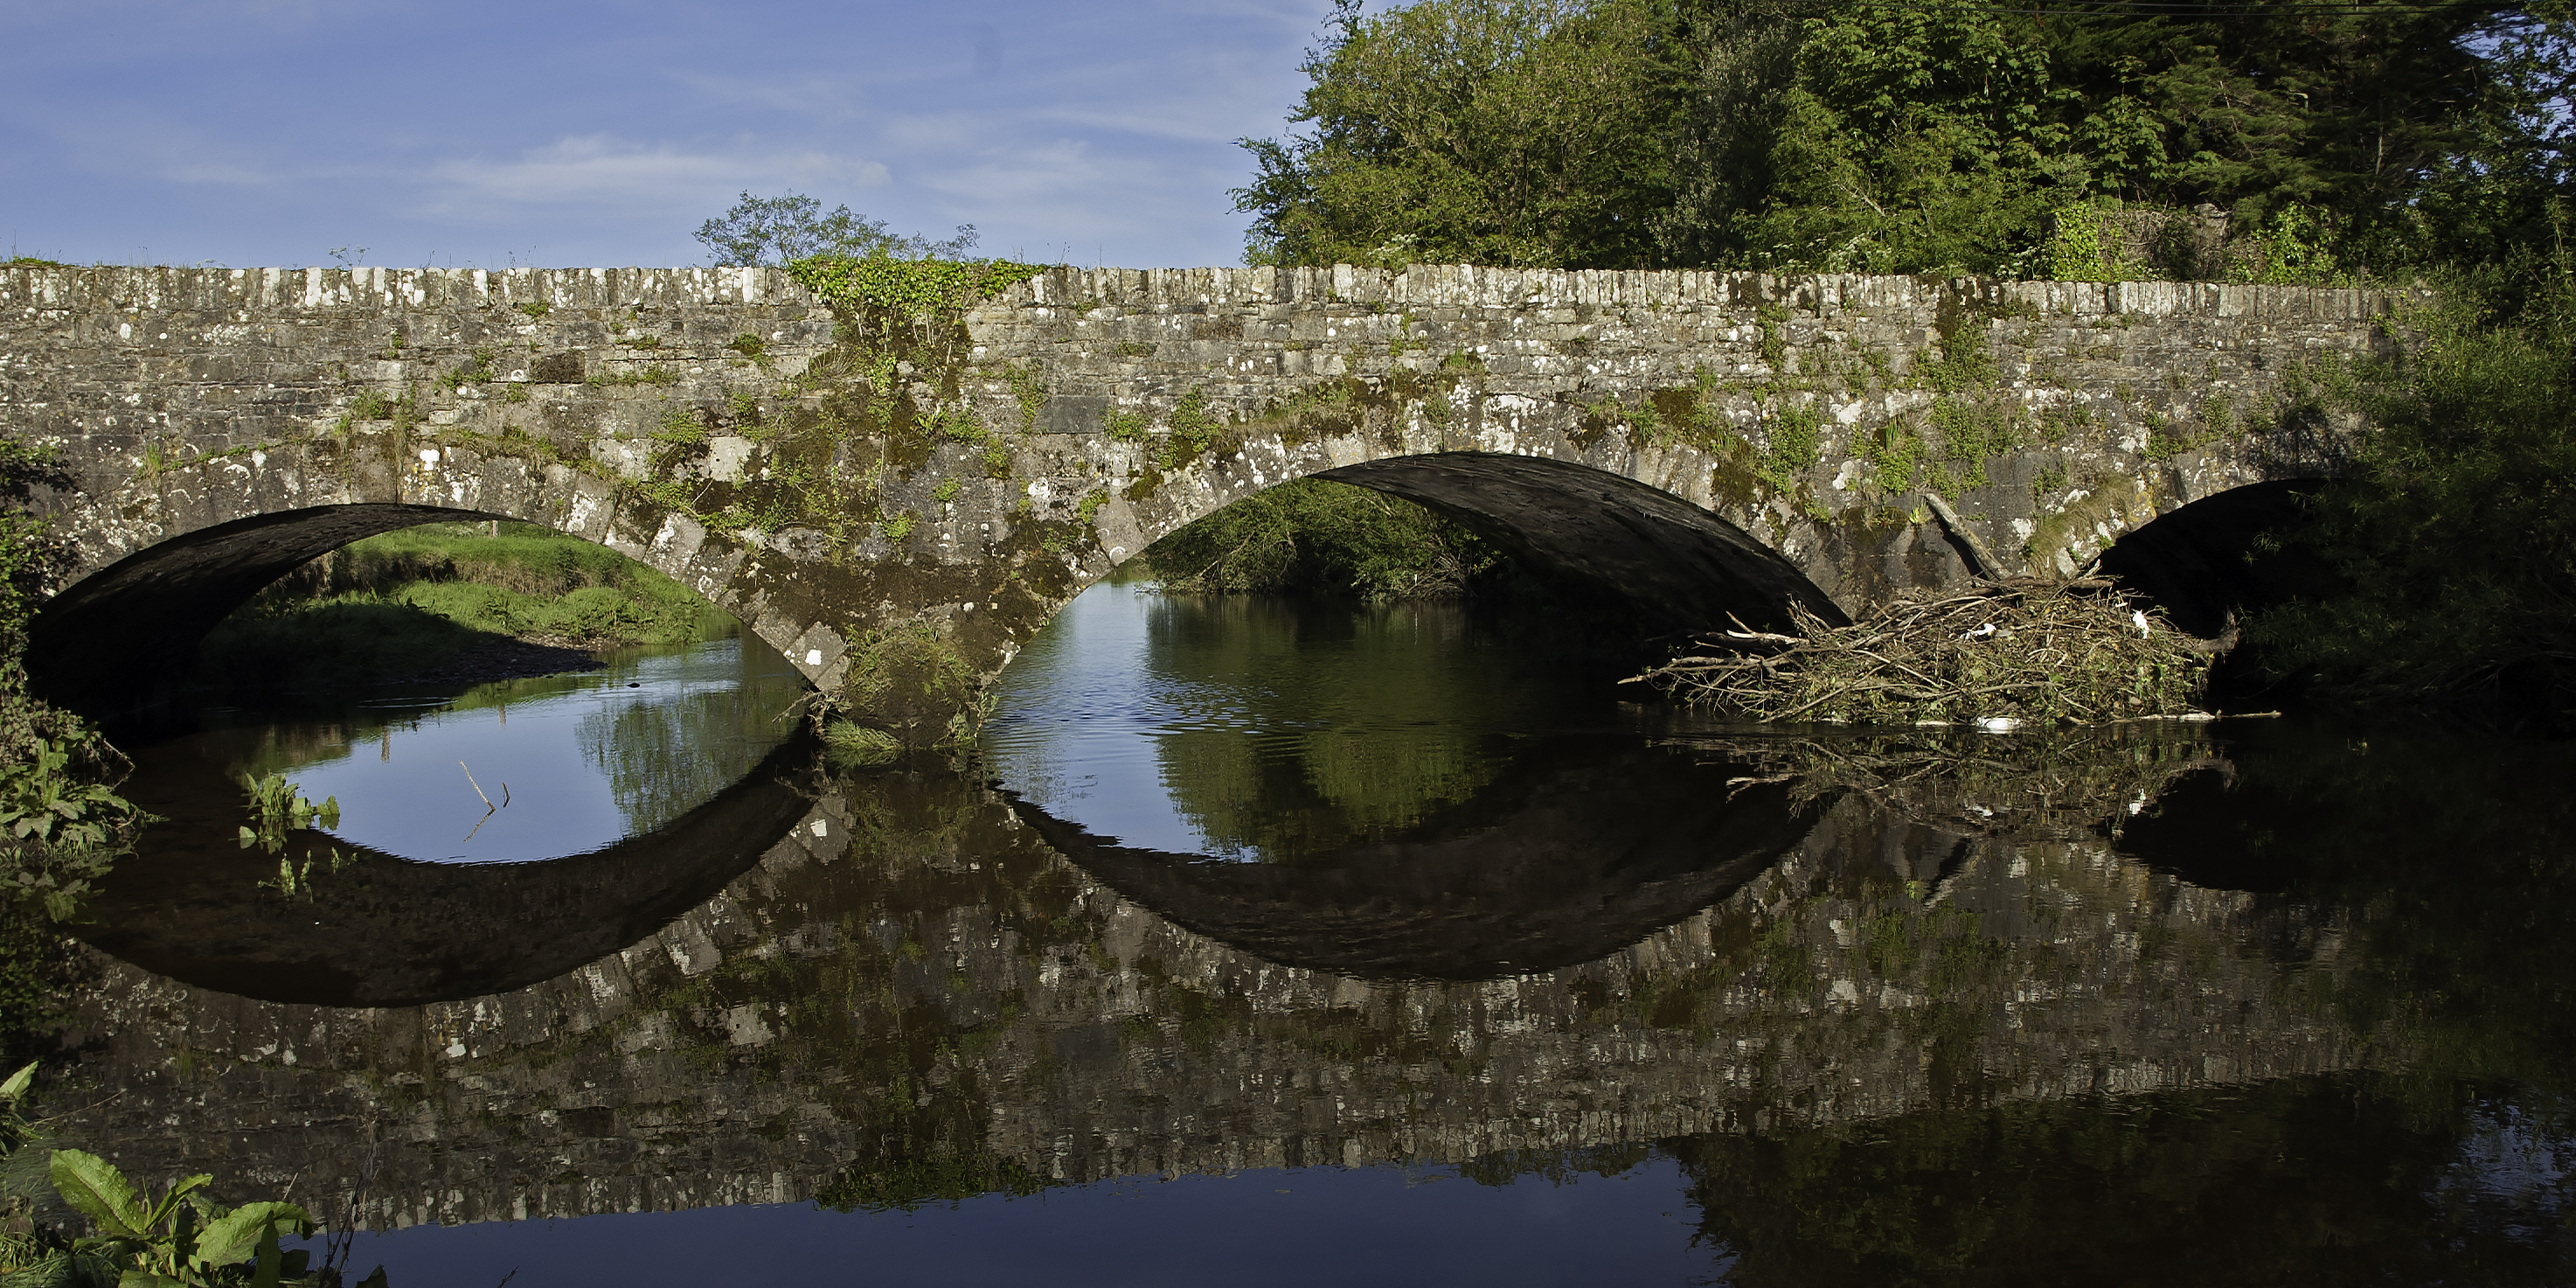 A Bridge over the River Nire